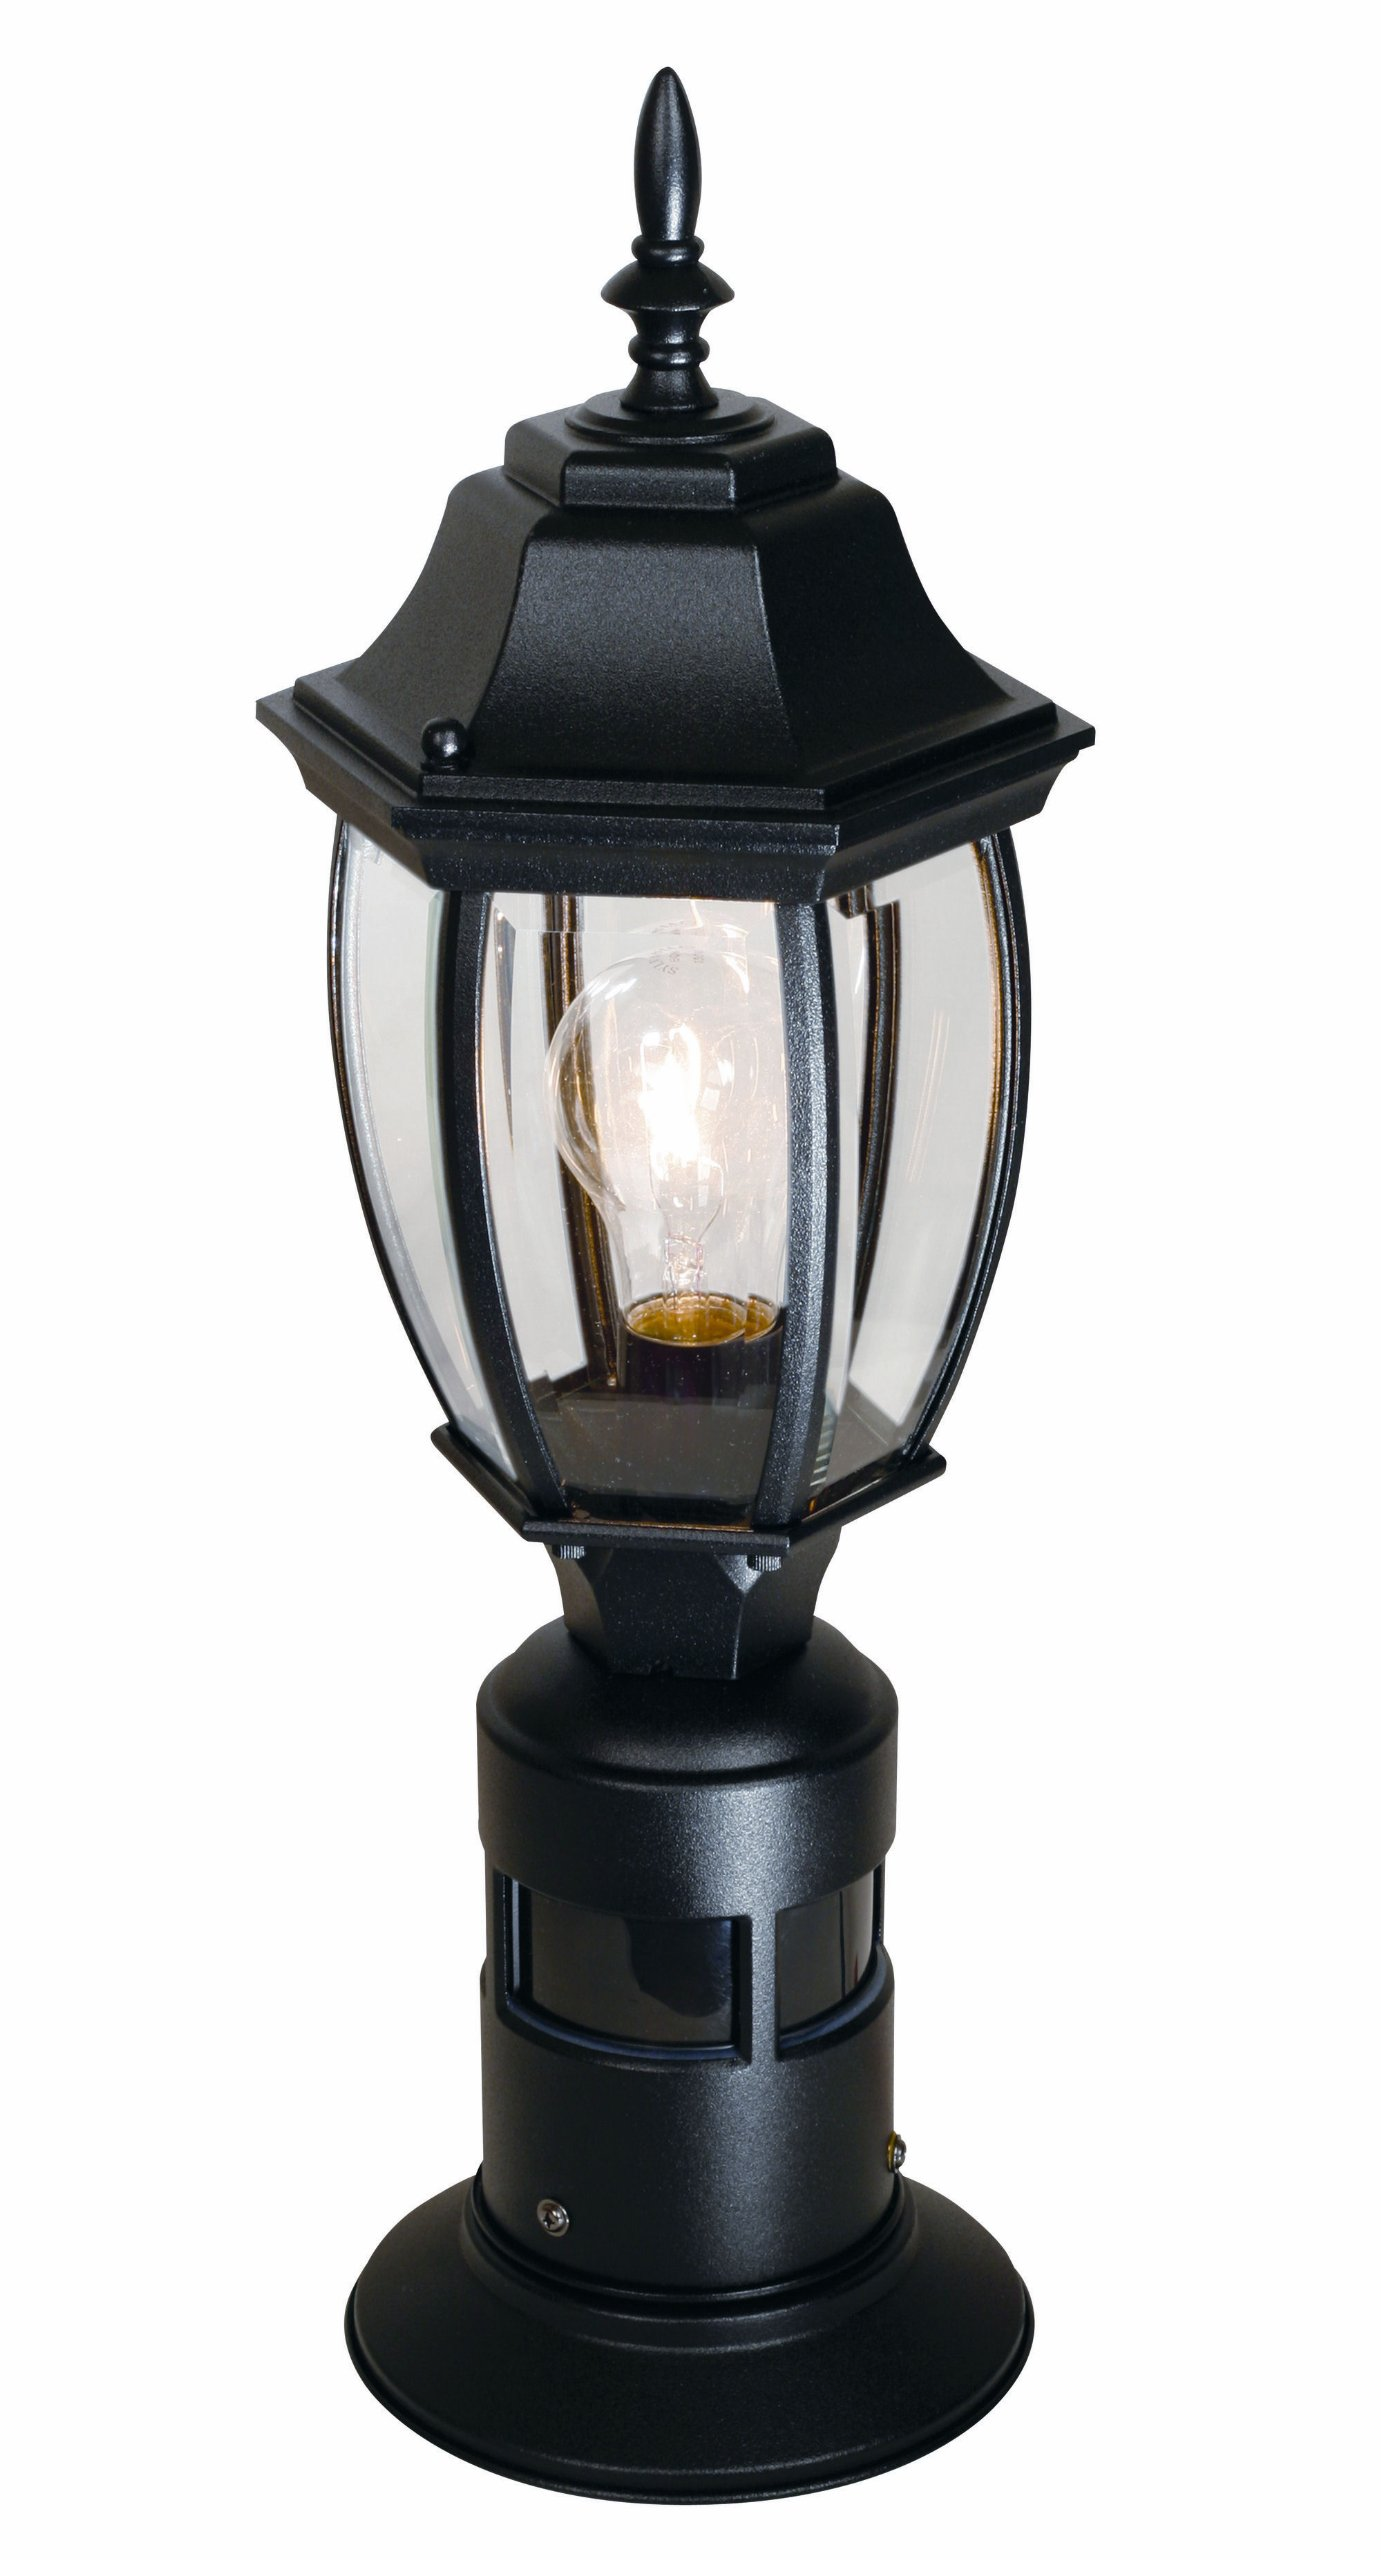 Heath/Zenith SL-4392-BK 360-Degree Motion-Activated Decorative Post Light, Black